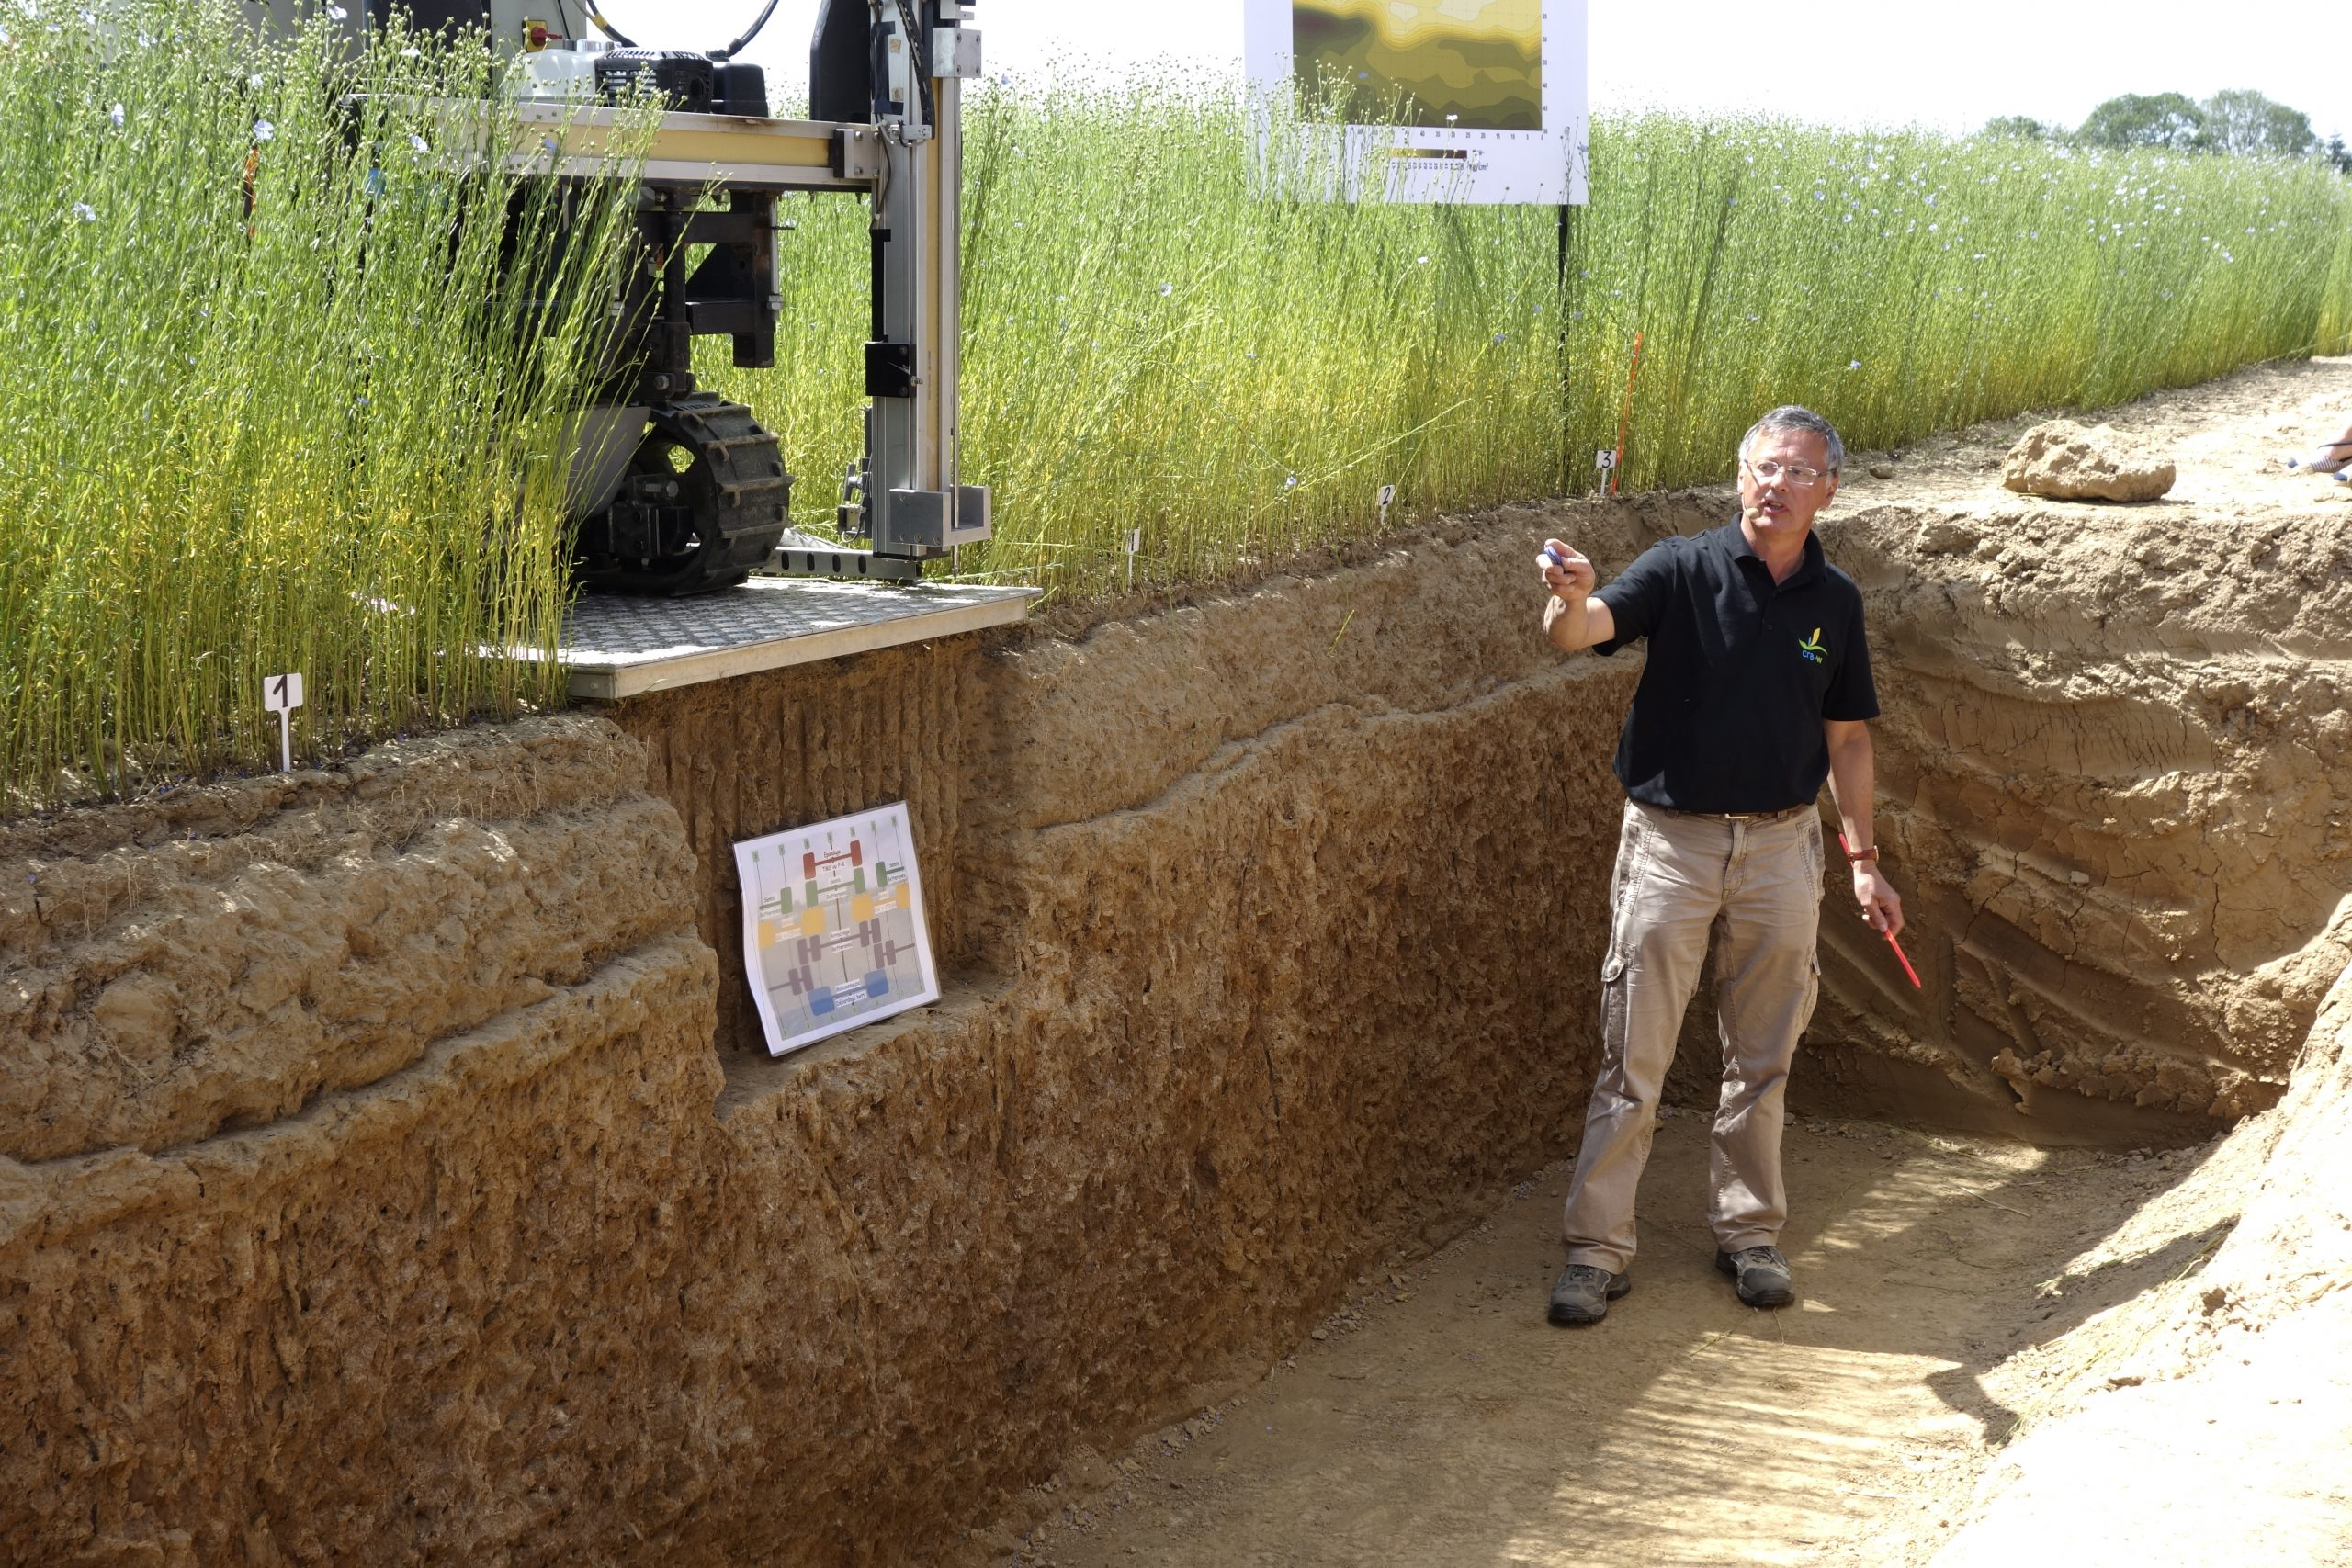 Christian Roisin explains a comparison of TMS and non-TMS soil profiles at the Walloon Agricultural Research Center